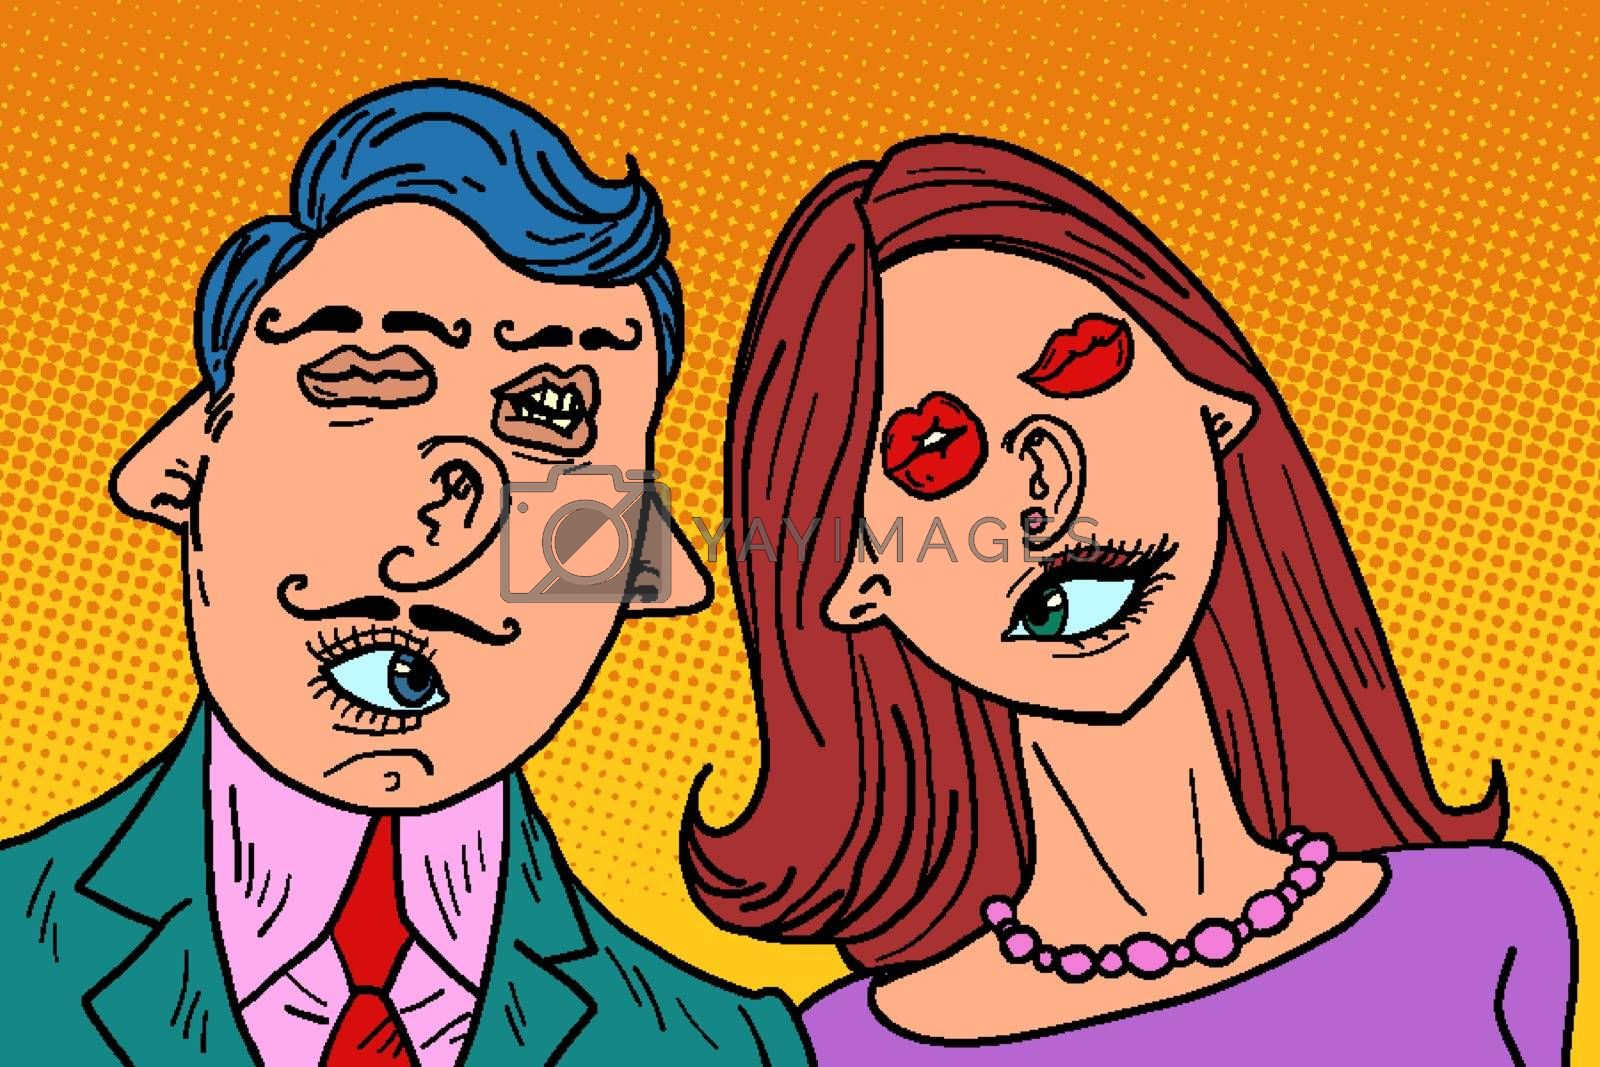 funny couple in love. Mixed faces eyes mouth ears nose. Comic cartoon pop art retro vector illustration drawing